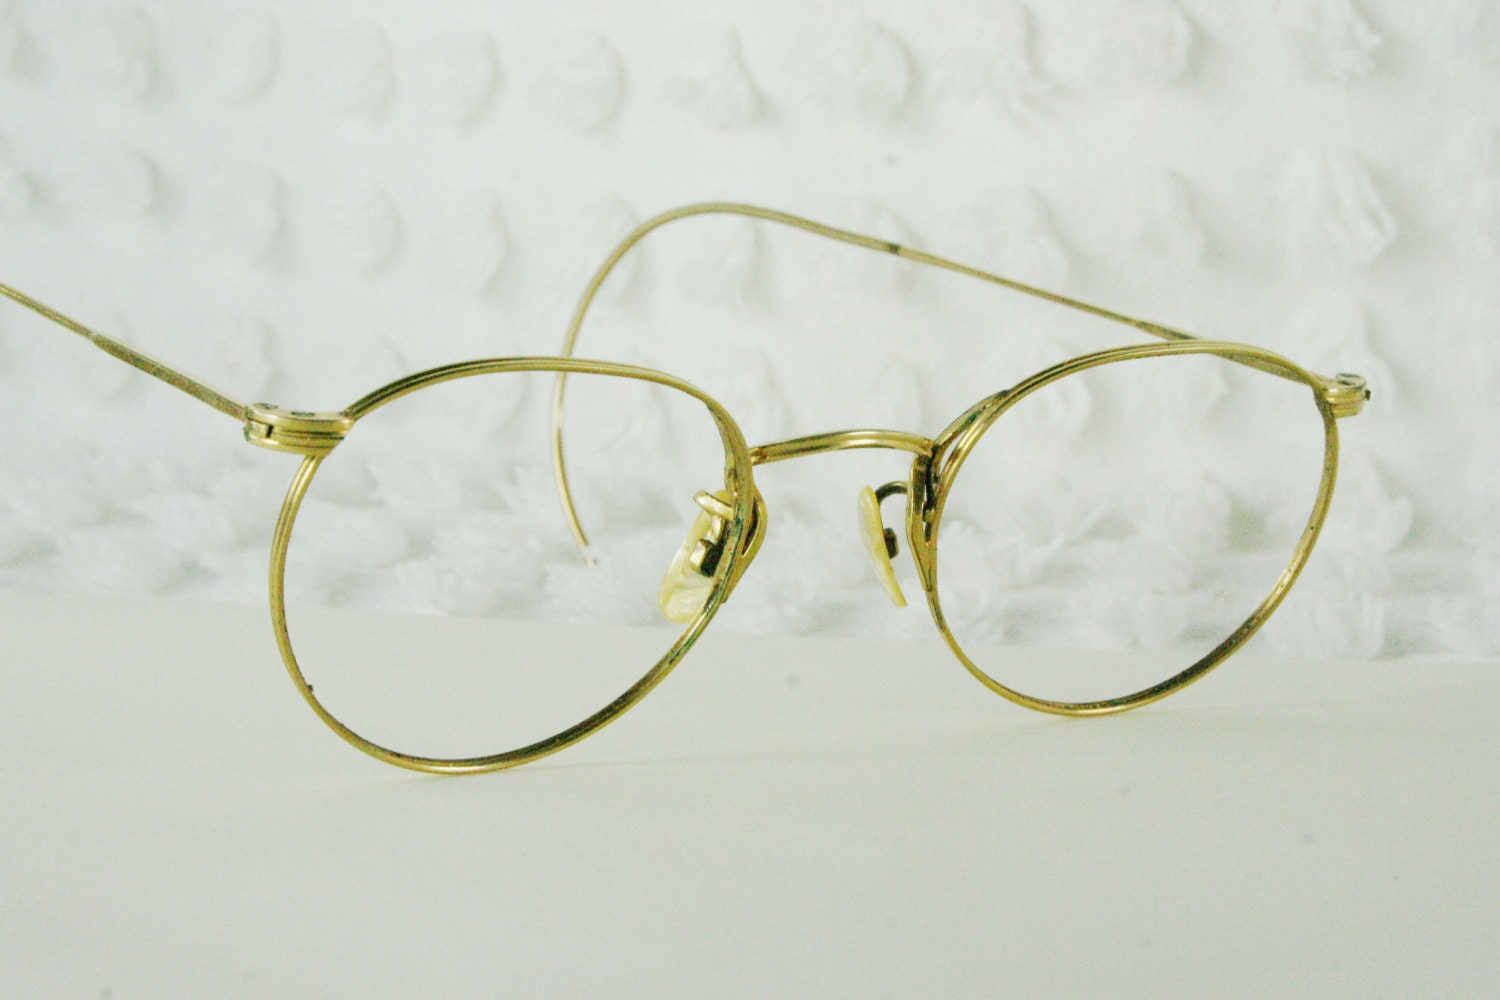 Eyeglass Frames With Long Temples : 40s Round Eyeglasses 1940s Ful Vue Frames Yellow by DIAeyewear